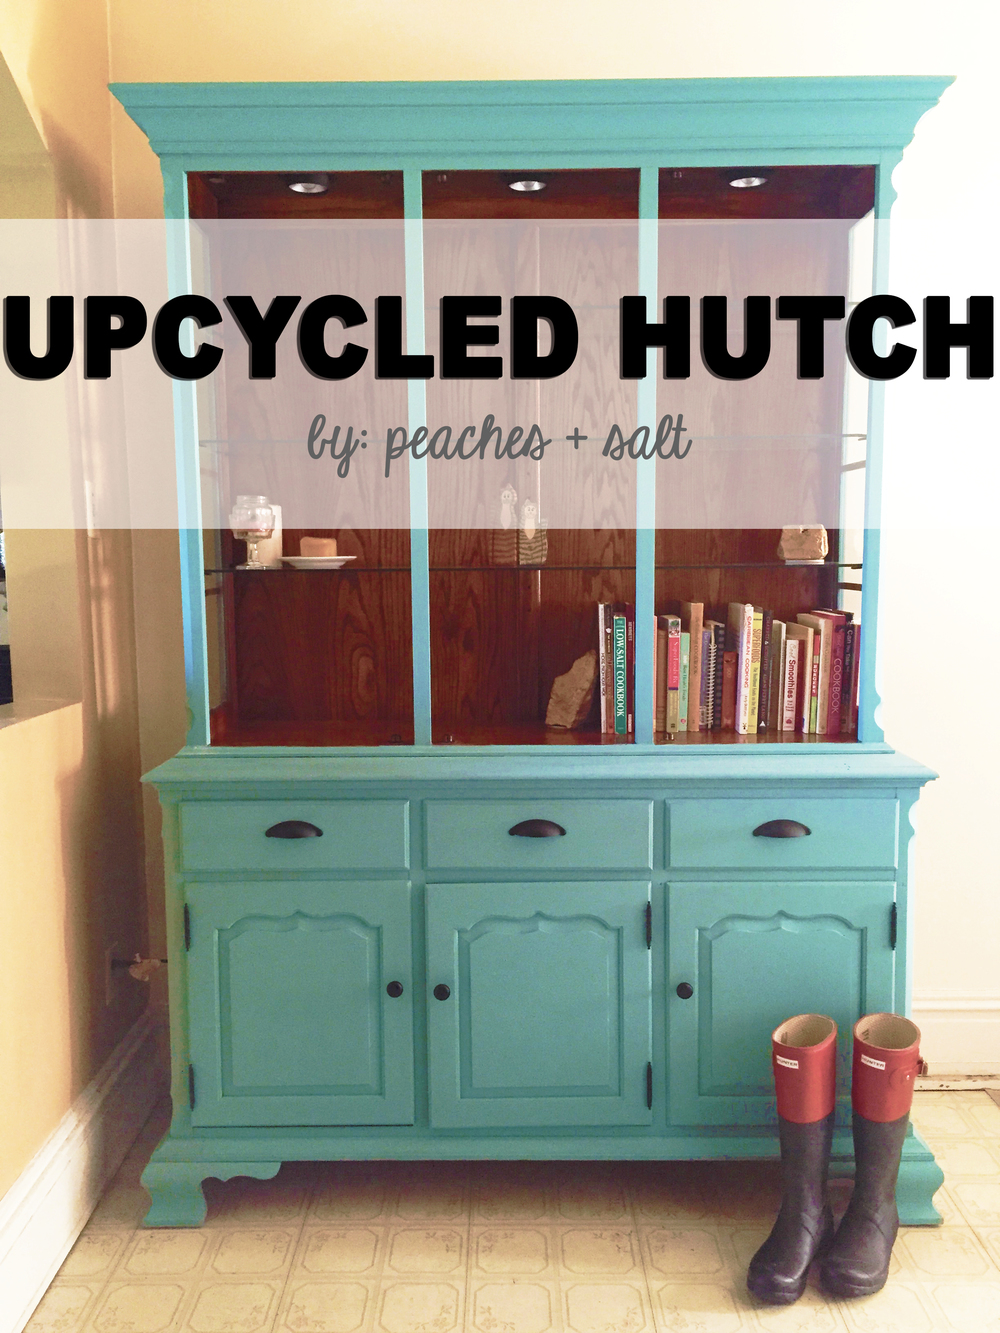 Upcycled Kitchen Upcycled Hutch Peaches Salt